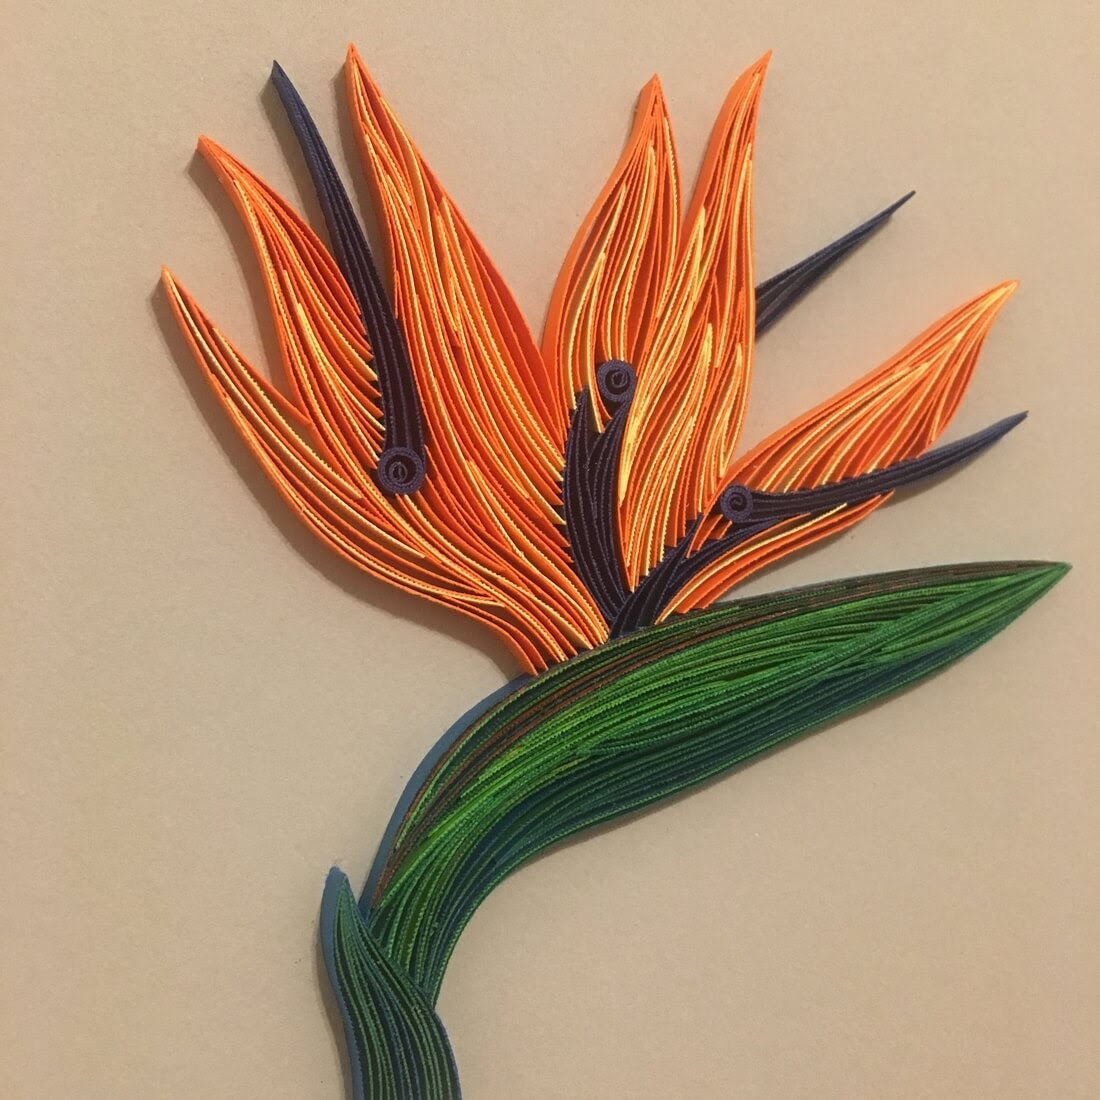 15-Bird-of-Paradise-Flower-Tatiana-People-and-Animal-Portraits-plus-Flower-Quilling-www-designstack-co